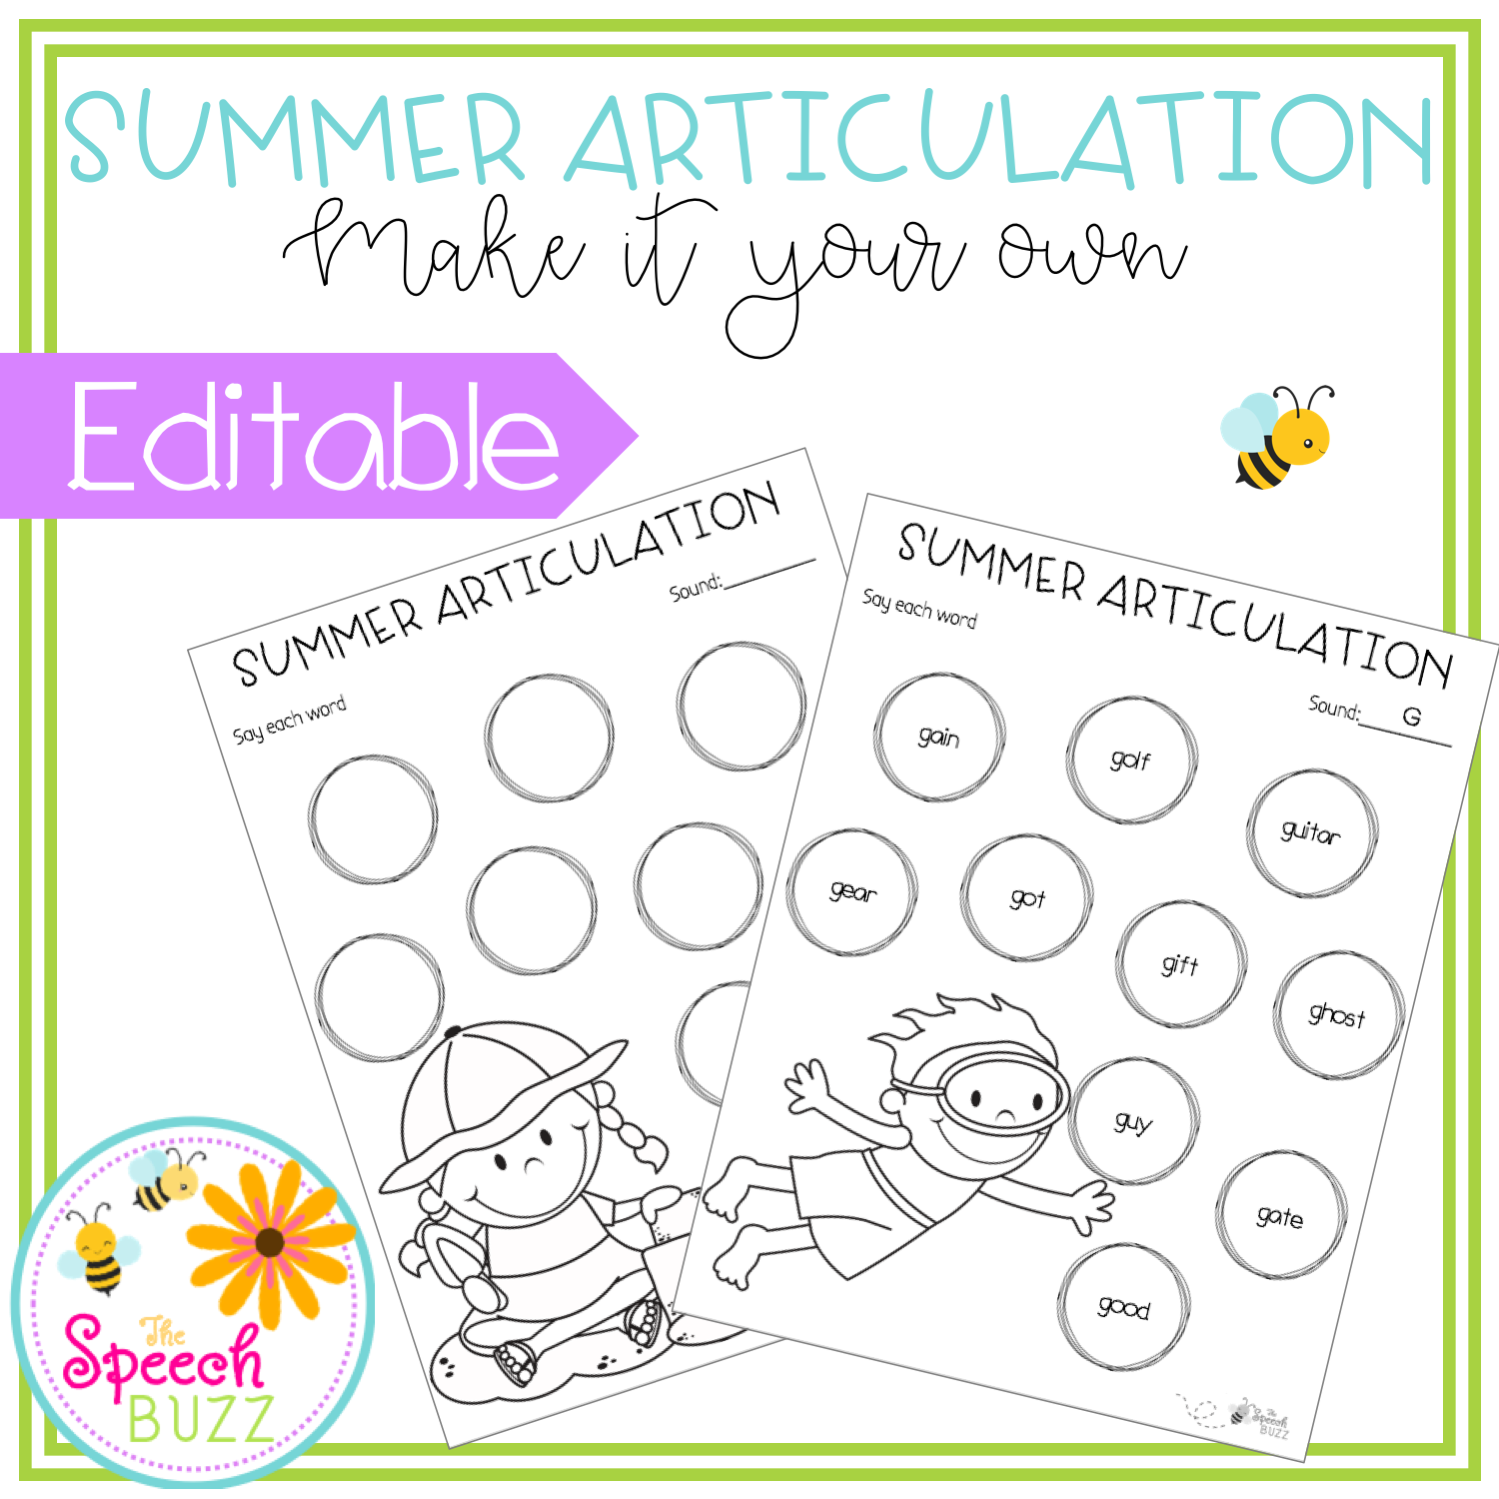 Summer Articulation